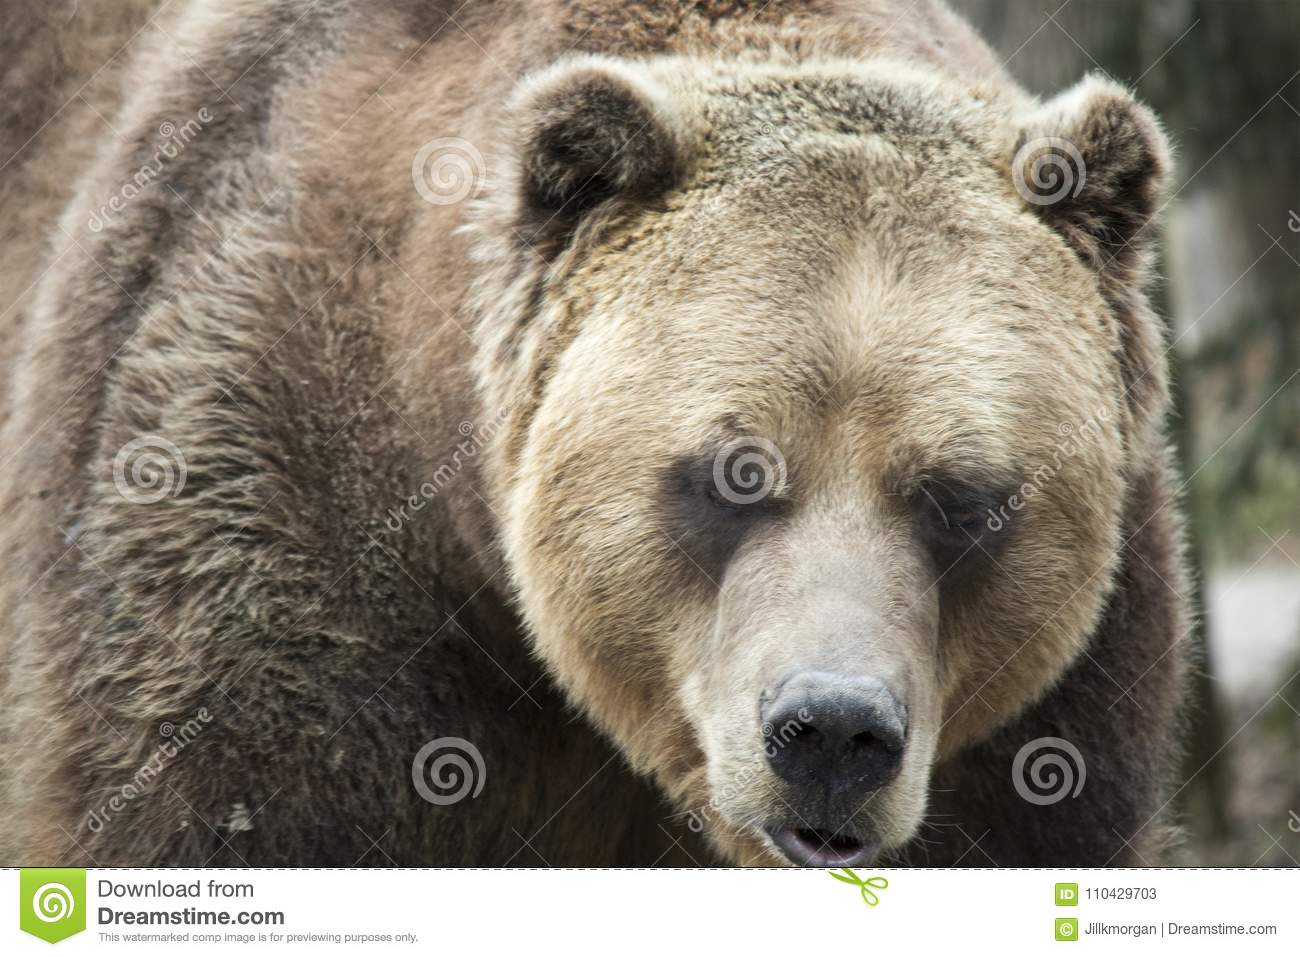 Female Grizzly Bear Front View Stock Image Image Of Outdoors Mammals 110429703 Find the perfect bear front stock illustrations from getty images. https www dreamstime com female grizzly bear front view front view female grizzly bear spring mouth open image110429703